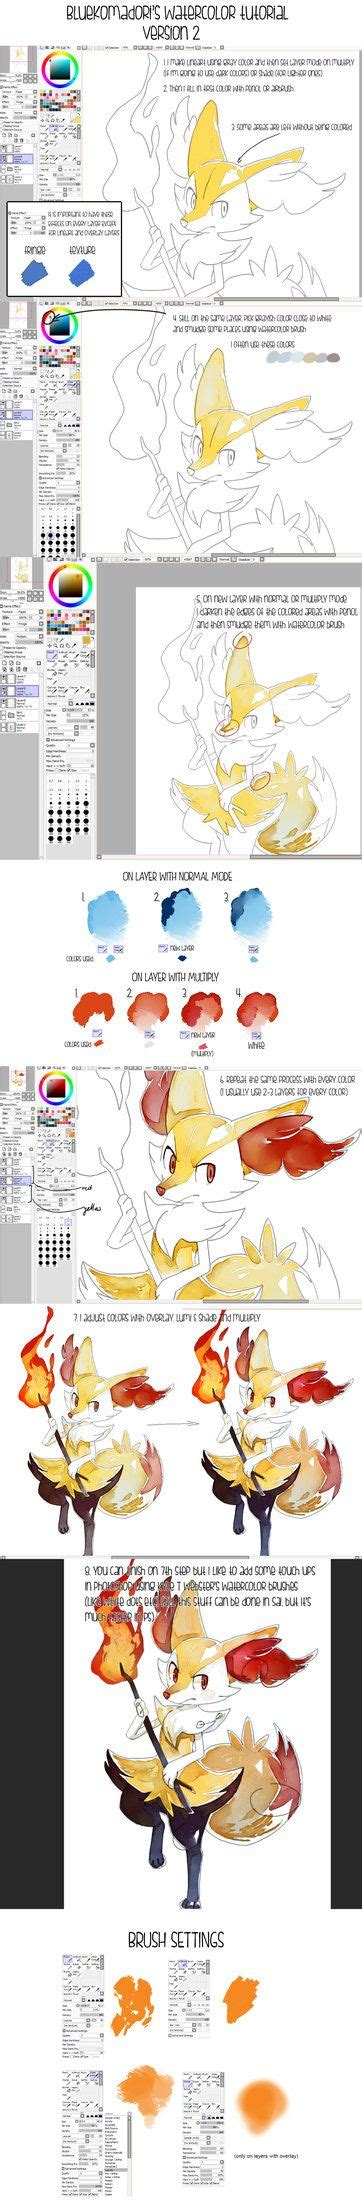 78 best images about paint tool sai brushes on watercolors paint tool sai and brushes